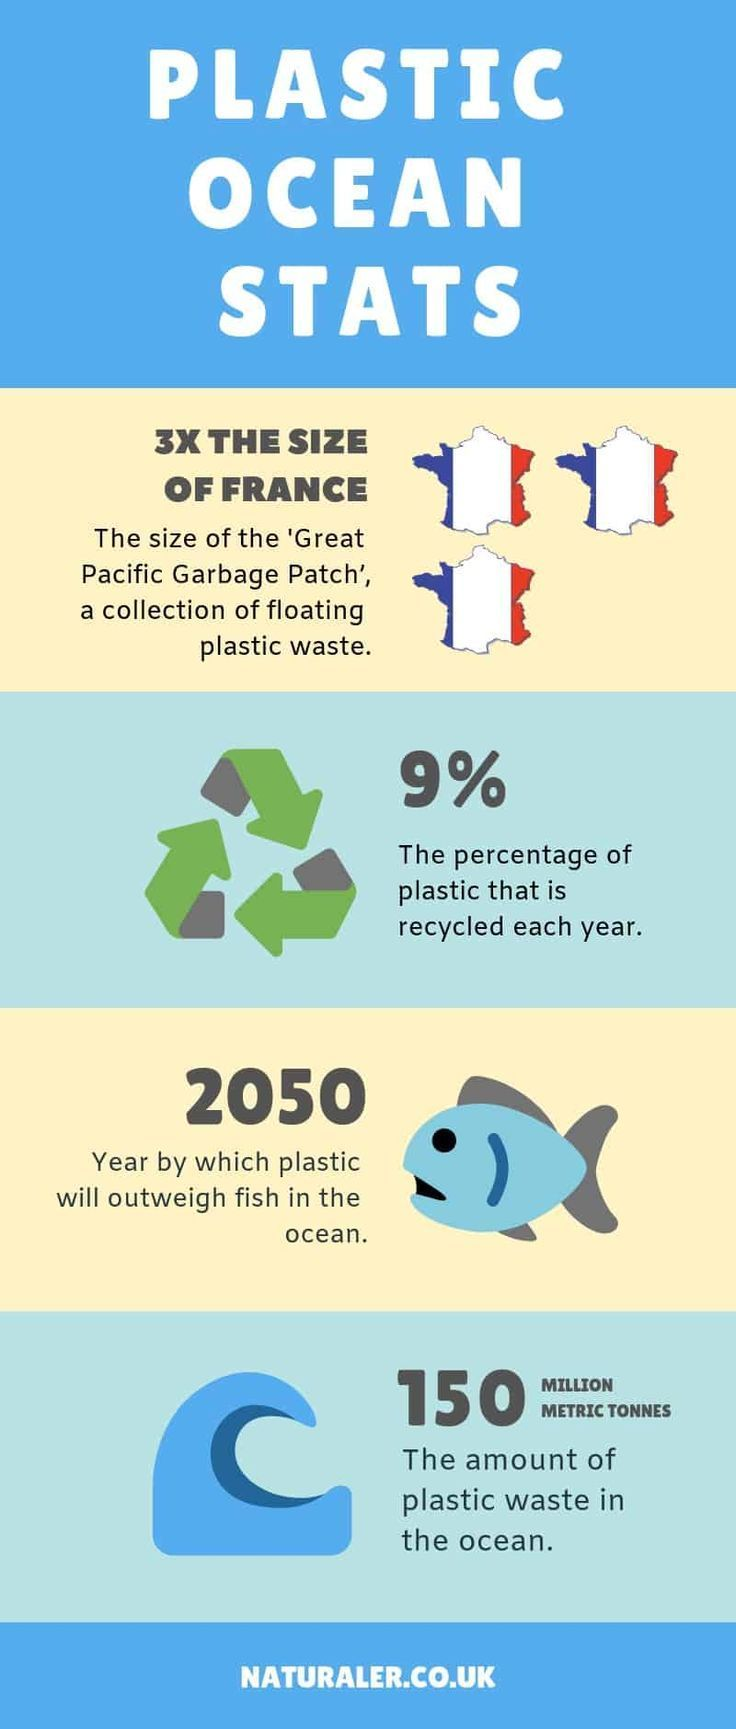 Facts Stats About Plastic Pollution In The Ocean Naturaler Plasticpollution Plasticocean In 2020 Plastic Pollution Facts Environment Facts Plastic Pollution